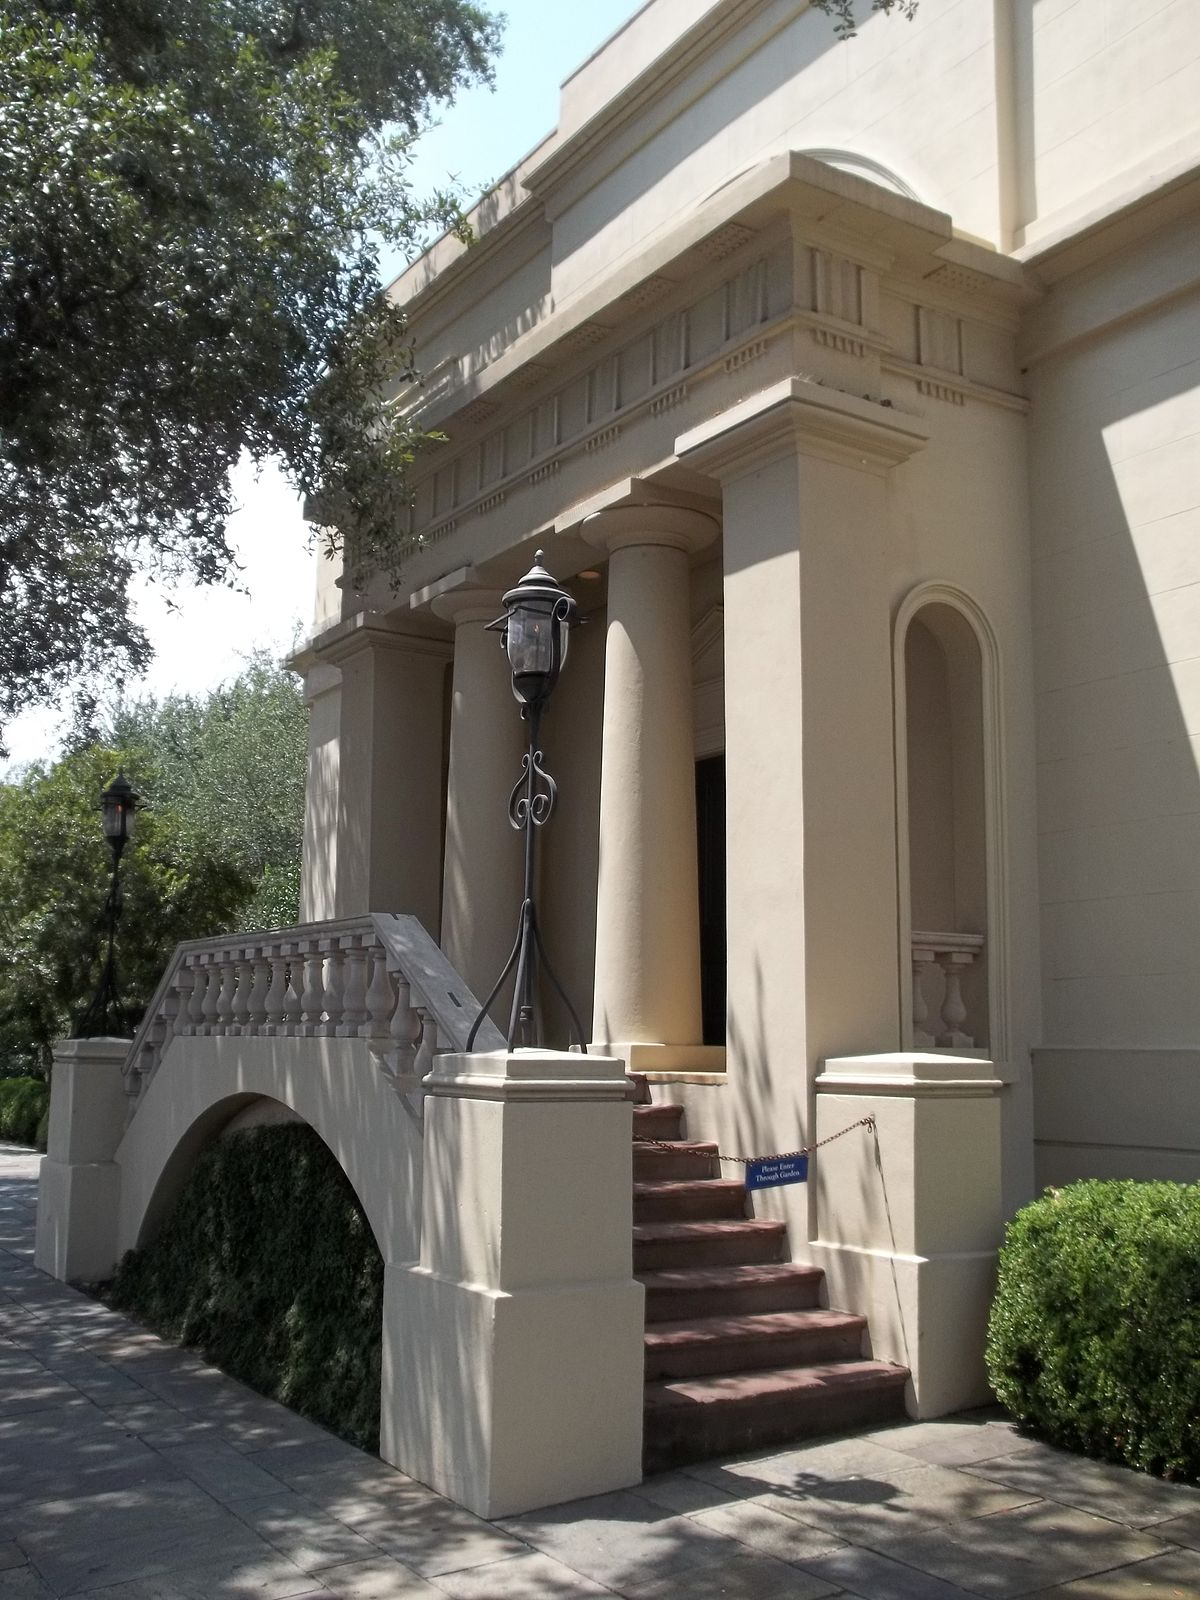 William Scarbrough House - Wikipedia